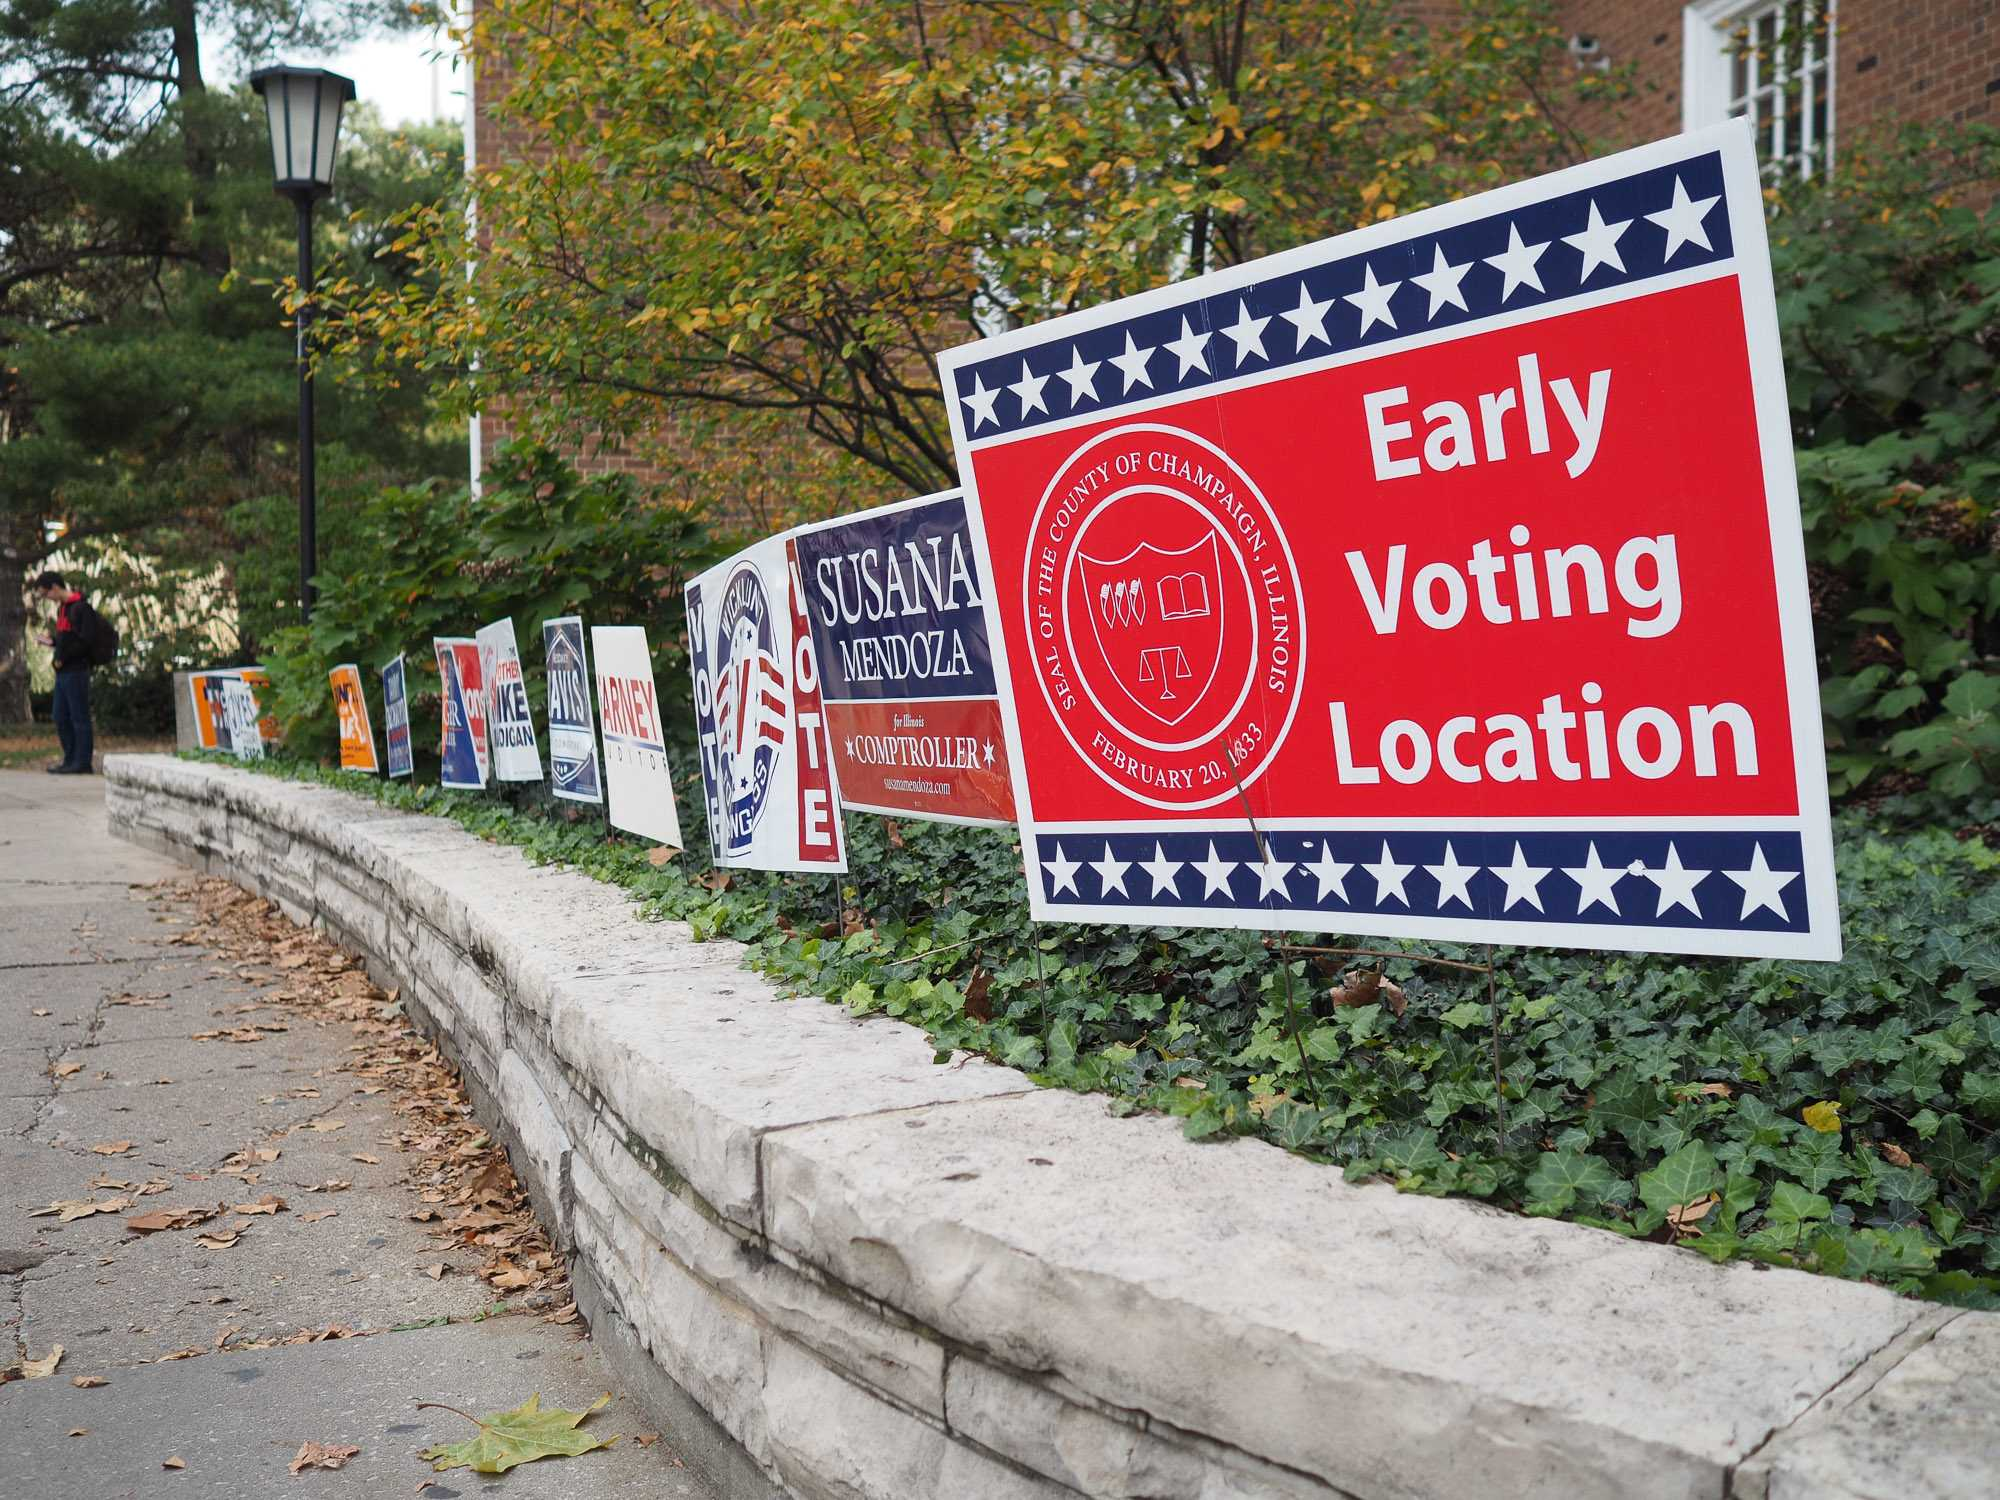 Enter your address into this Polling Place Finder to find out important voting information for your precinct including